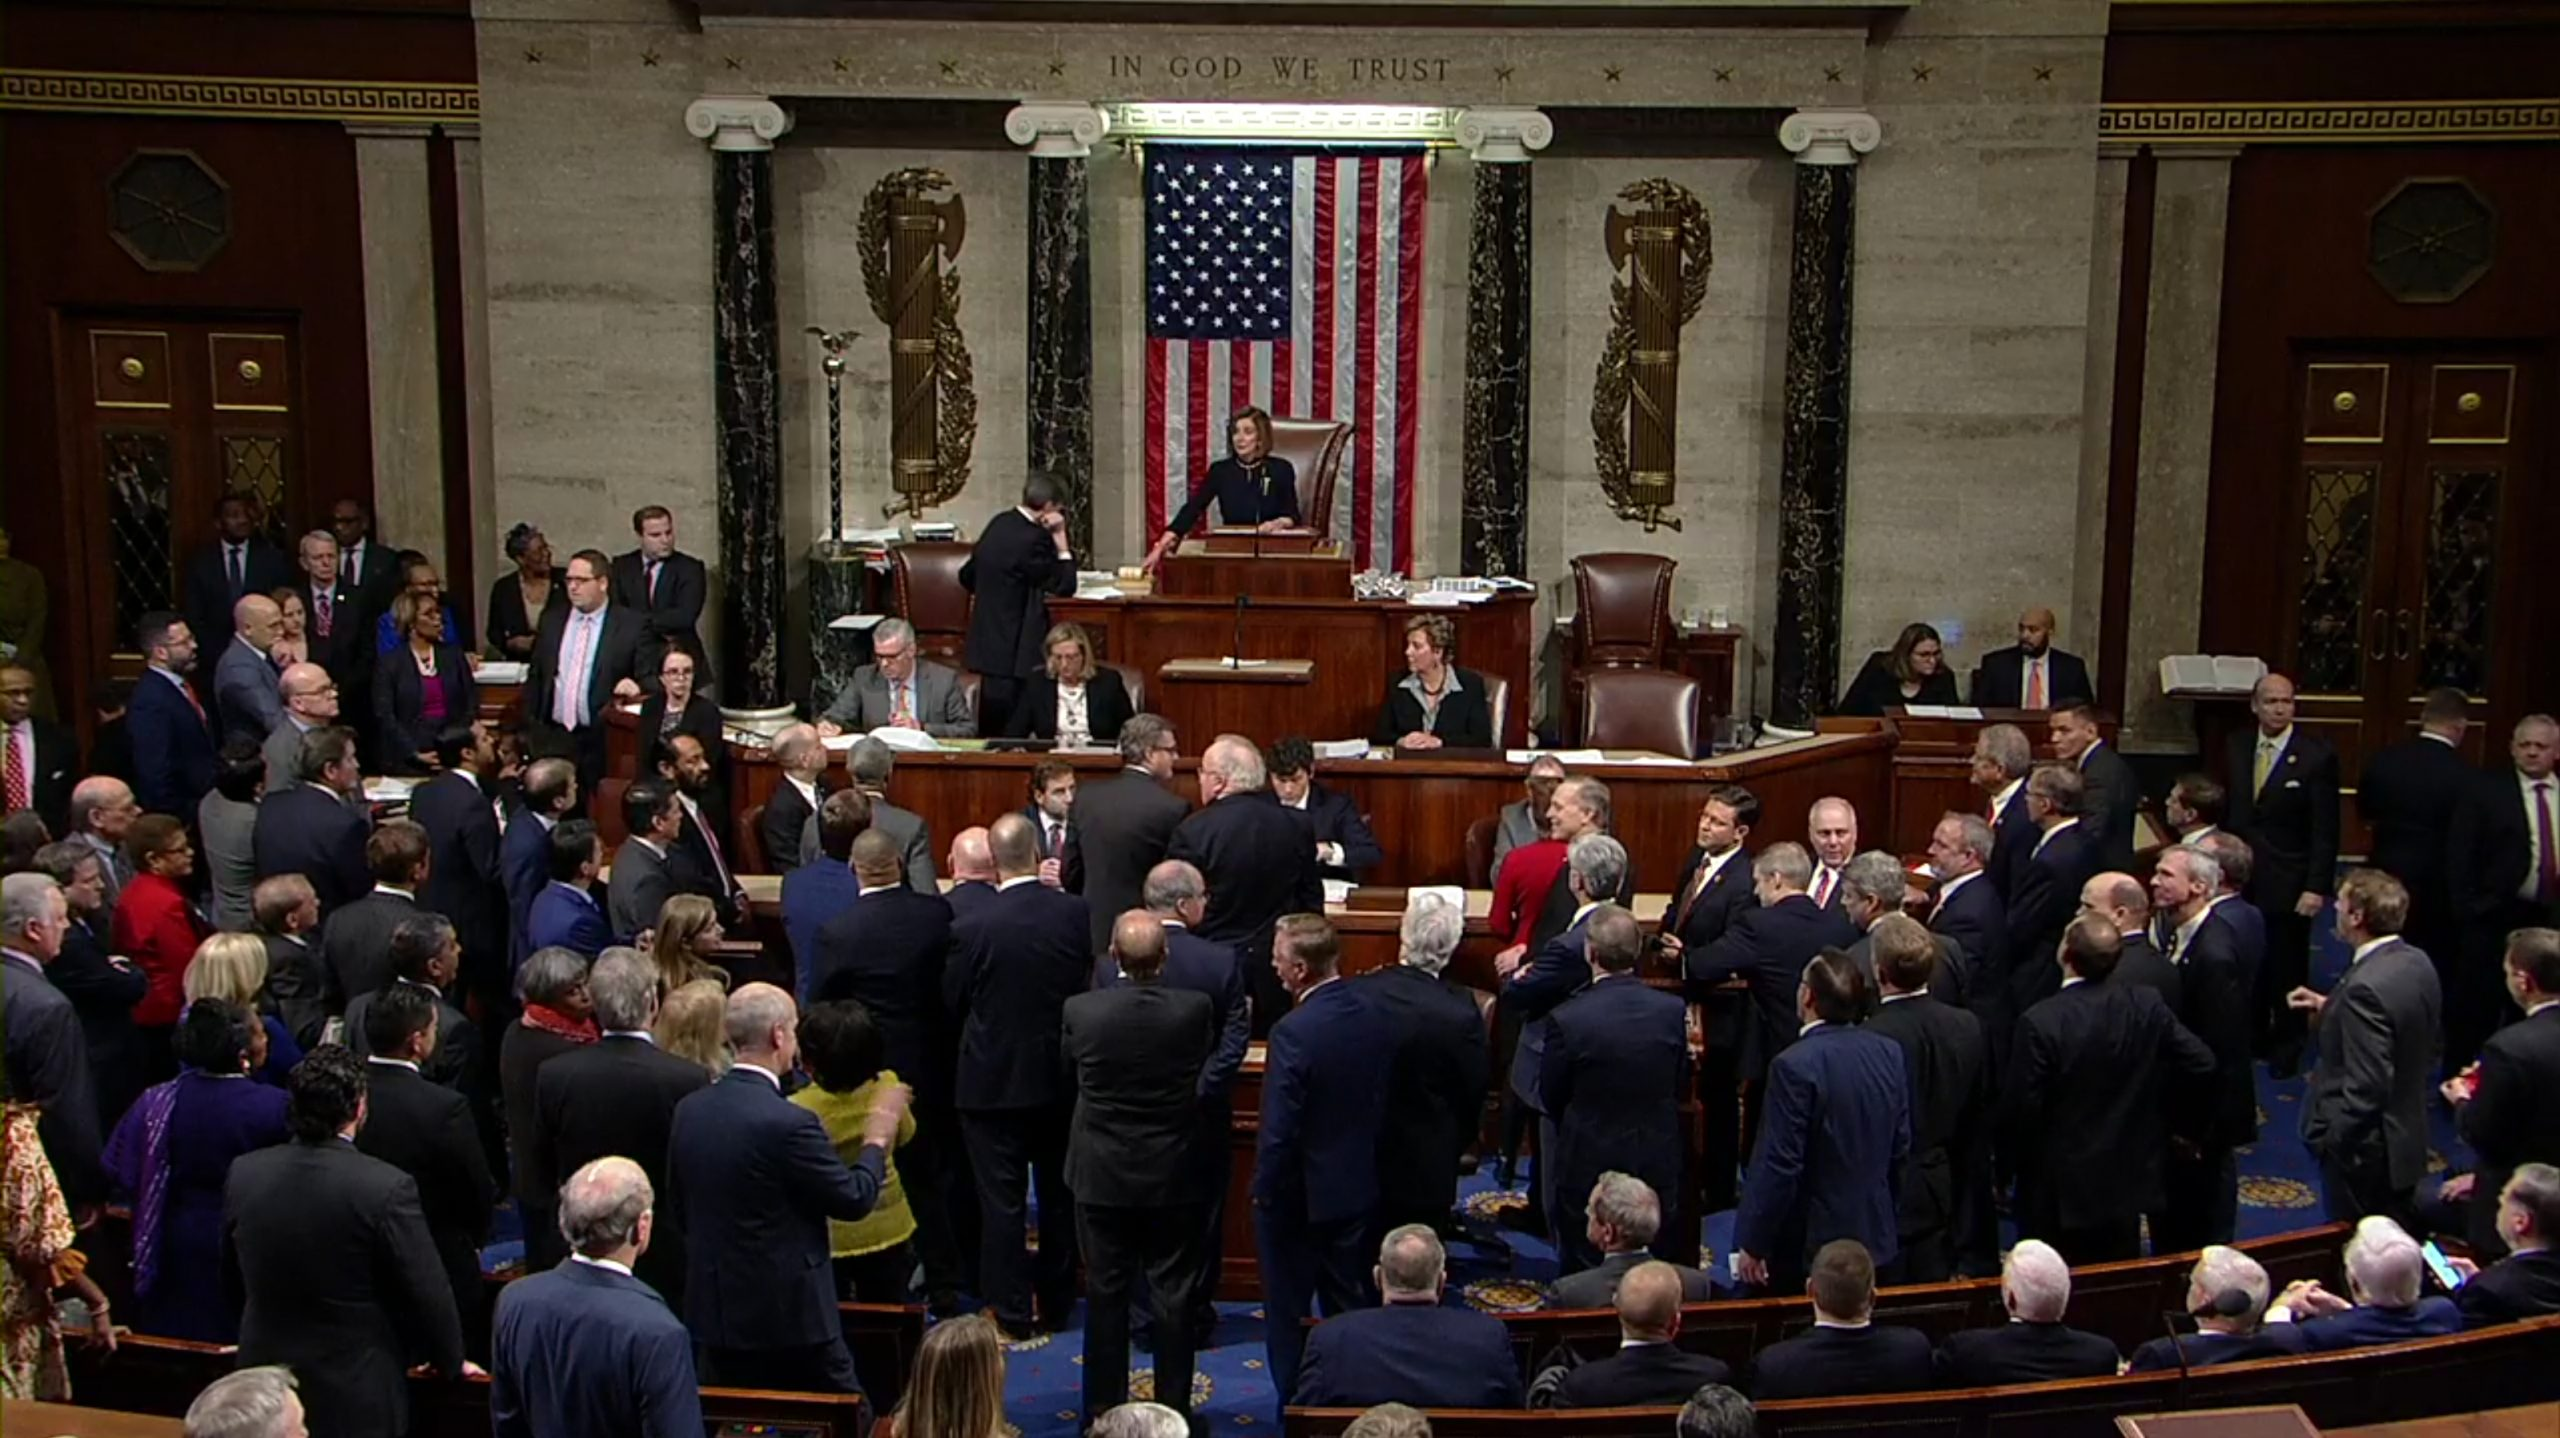 Members of House of Representatives vote on two articles of impeachment (Image WikiCommons, H. Res. 755)